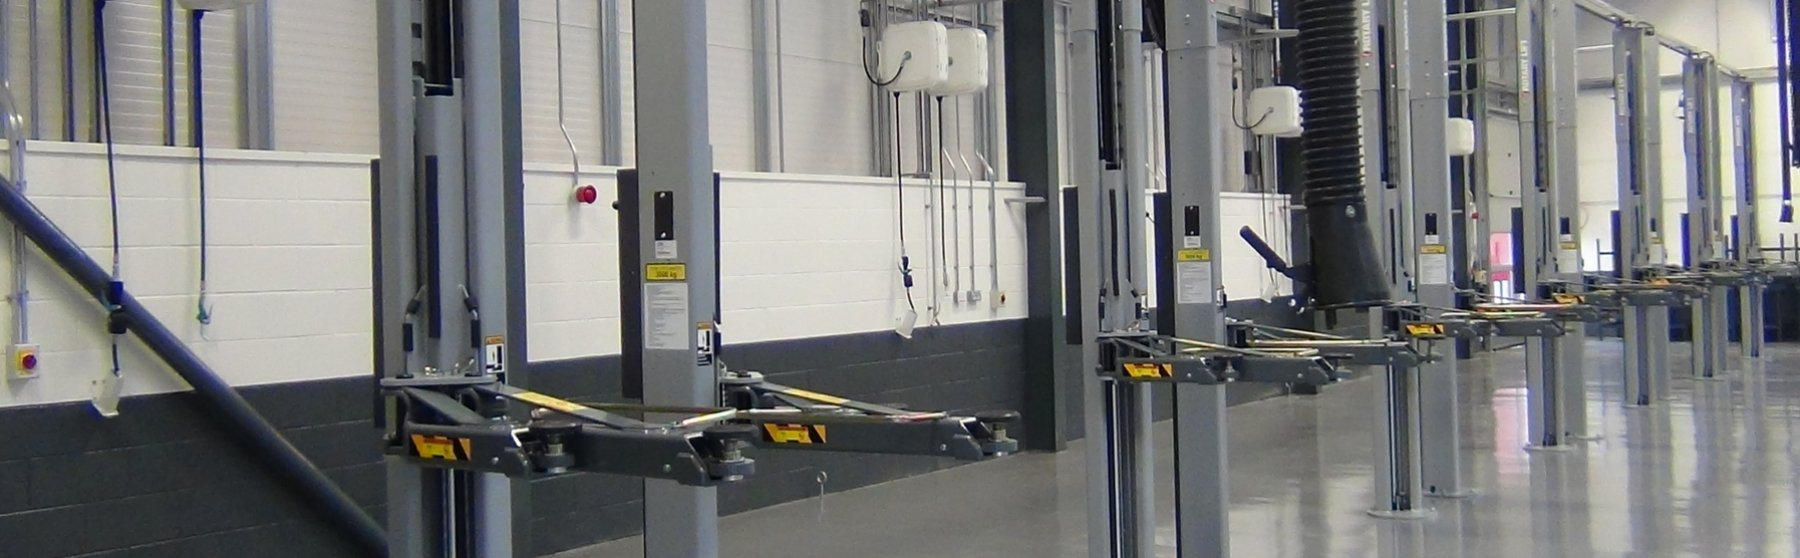 Experts In Garage Equipment. Working in partnership with you to help you achieve your goals